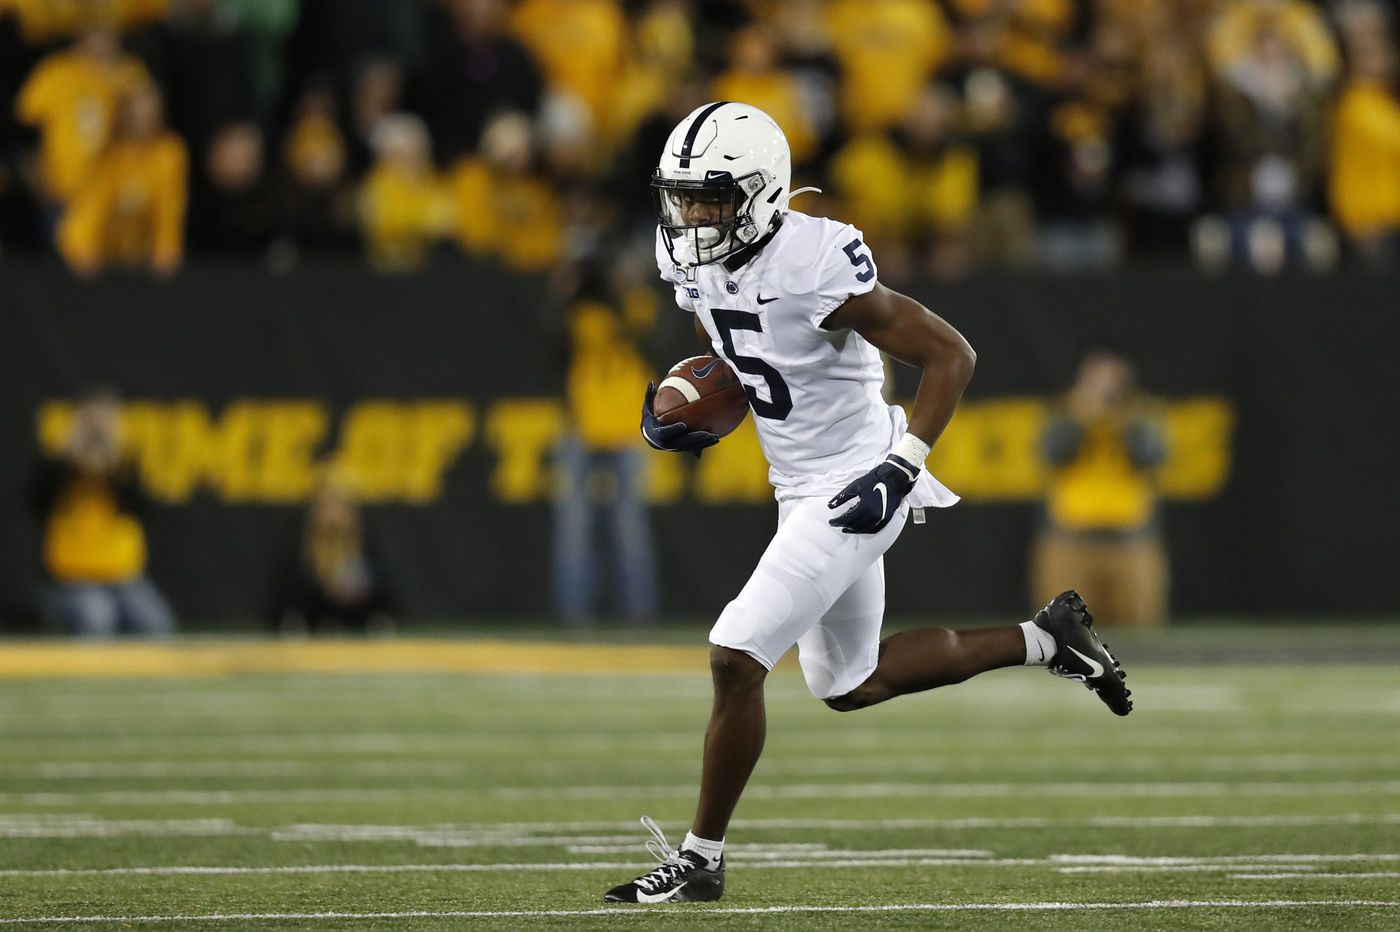 Most of Penn State's wide receivers are struggling with consistency and confidence